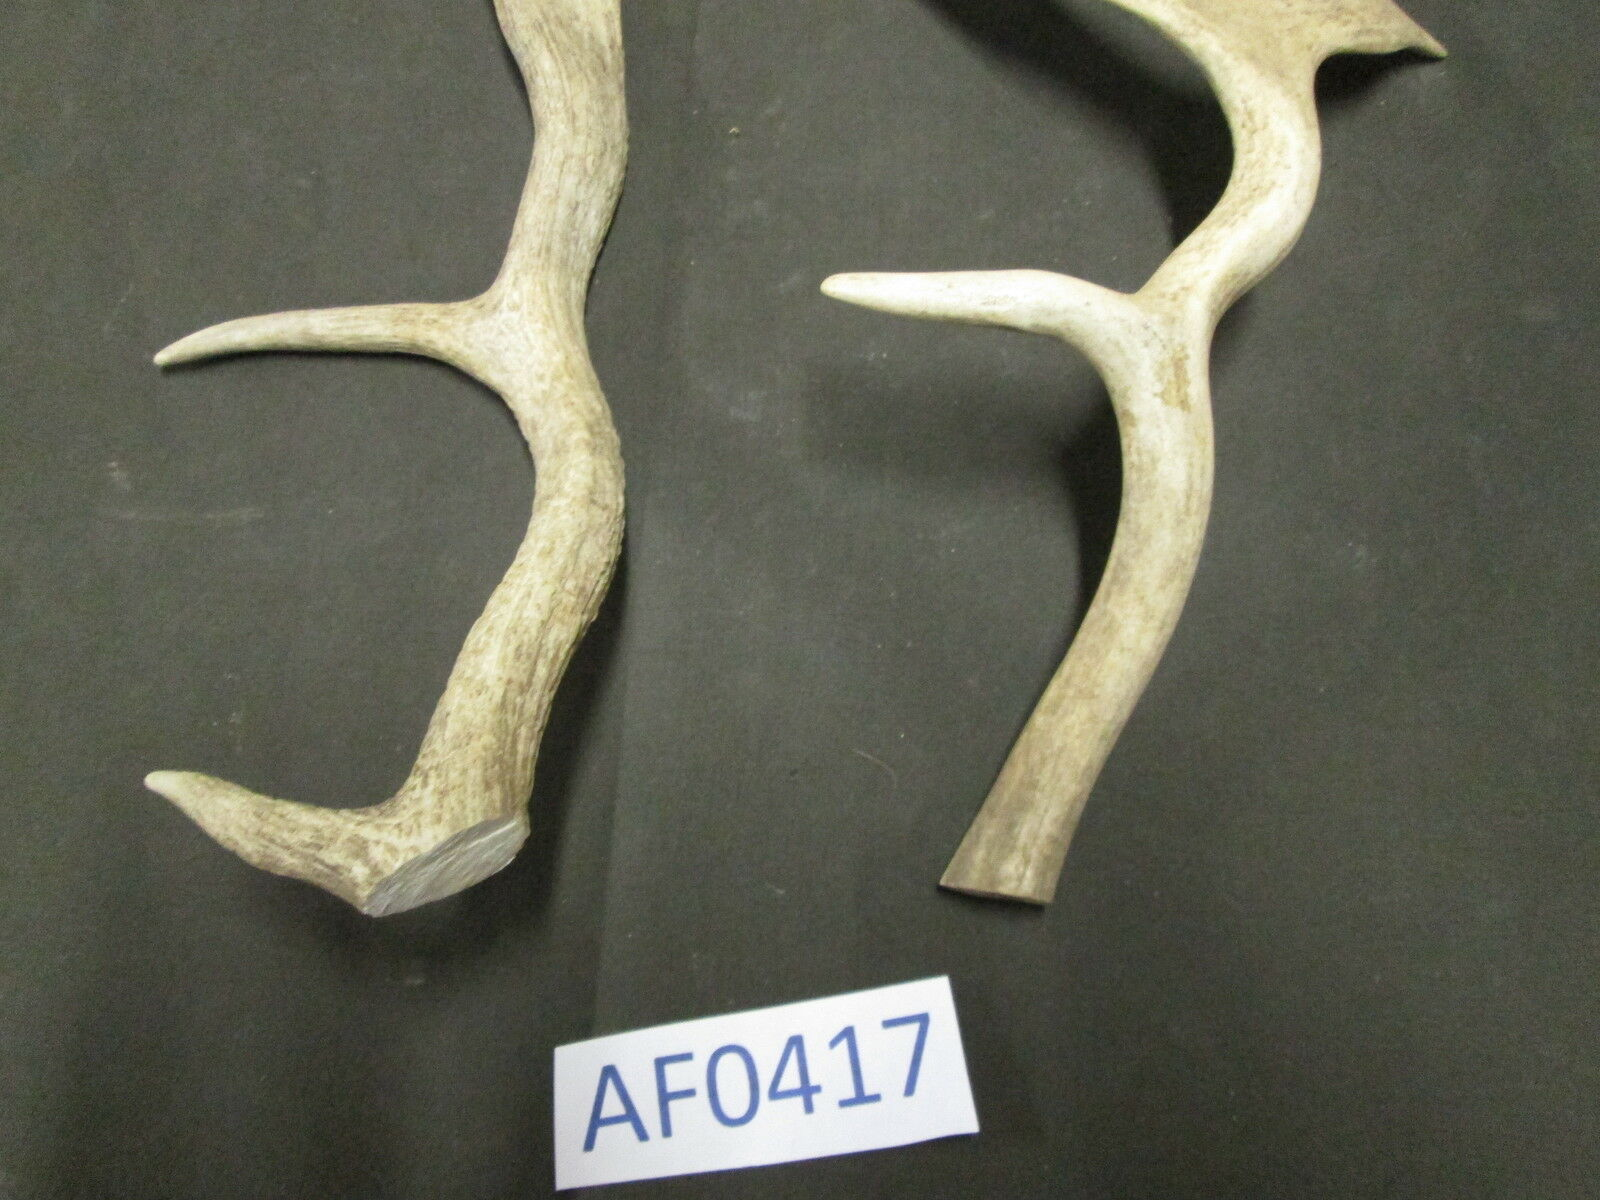 2 Fallow Crafts Deer Antlers bases cutoff for Crafts Fallow Home Cabin Office Wildlife AF0417 30256a